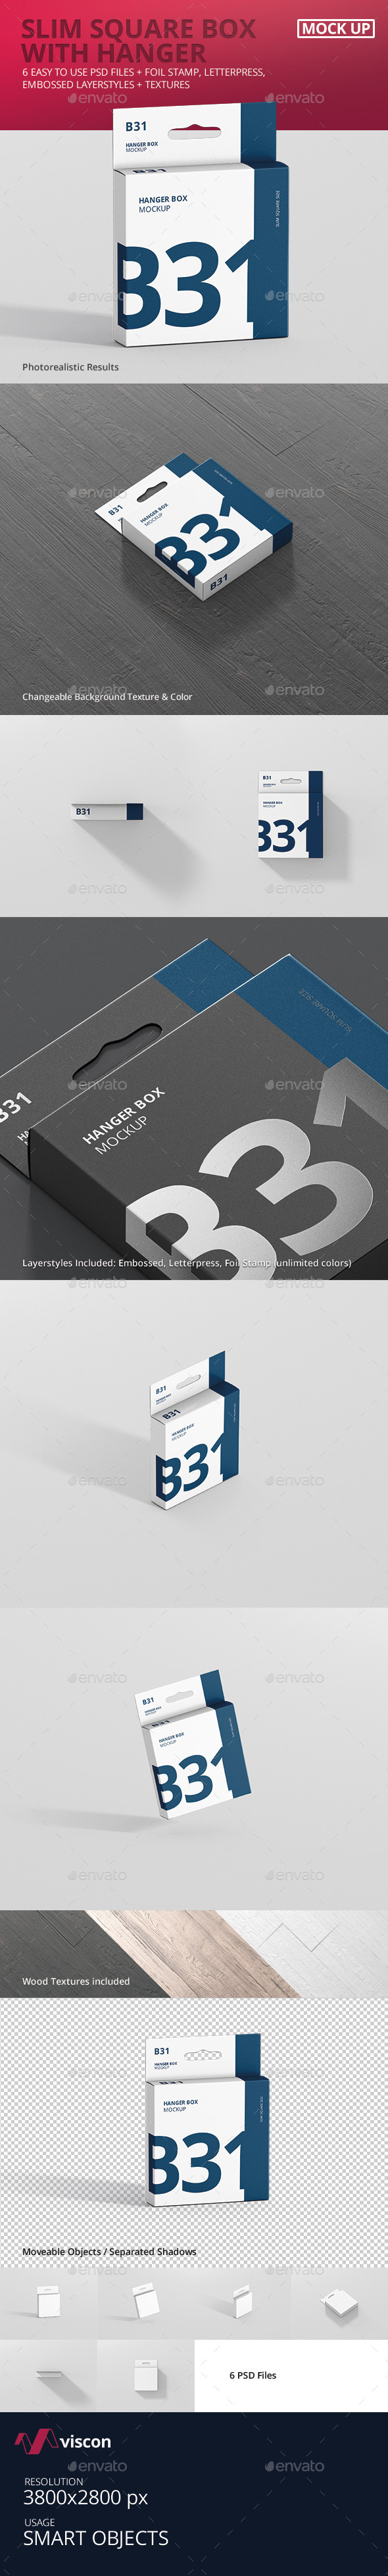 Box Mockup - Slim Square Size with Hanger - Miscellaneous Packaging